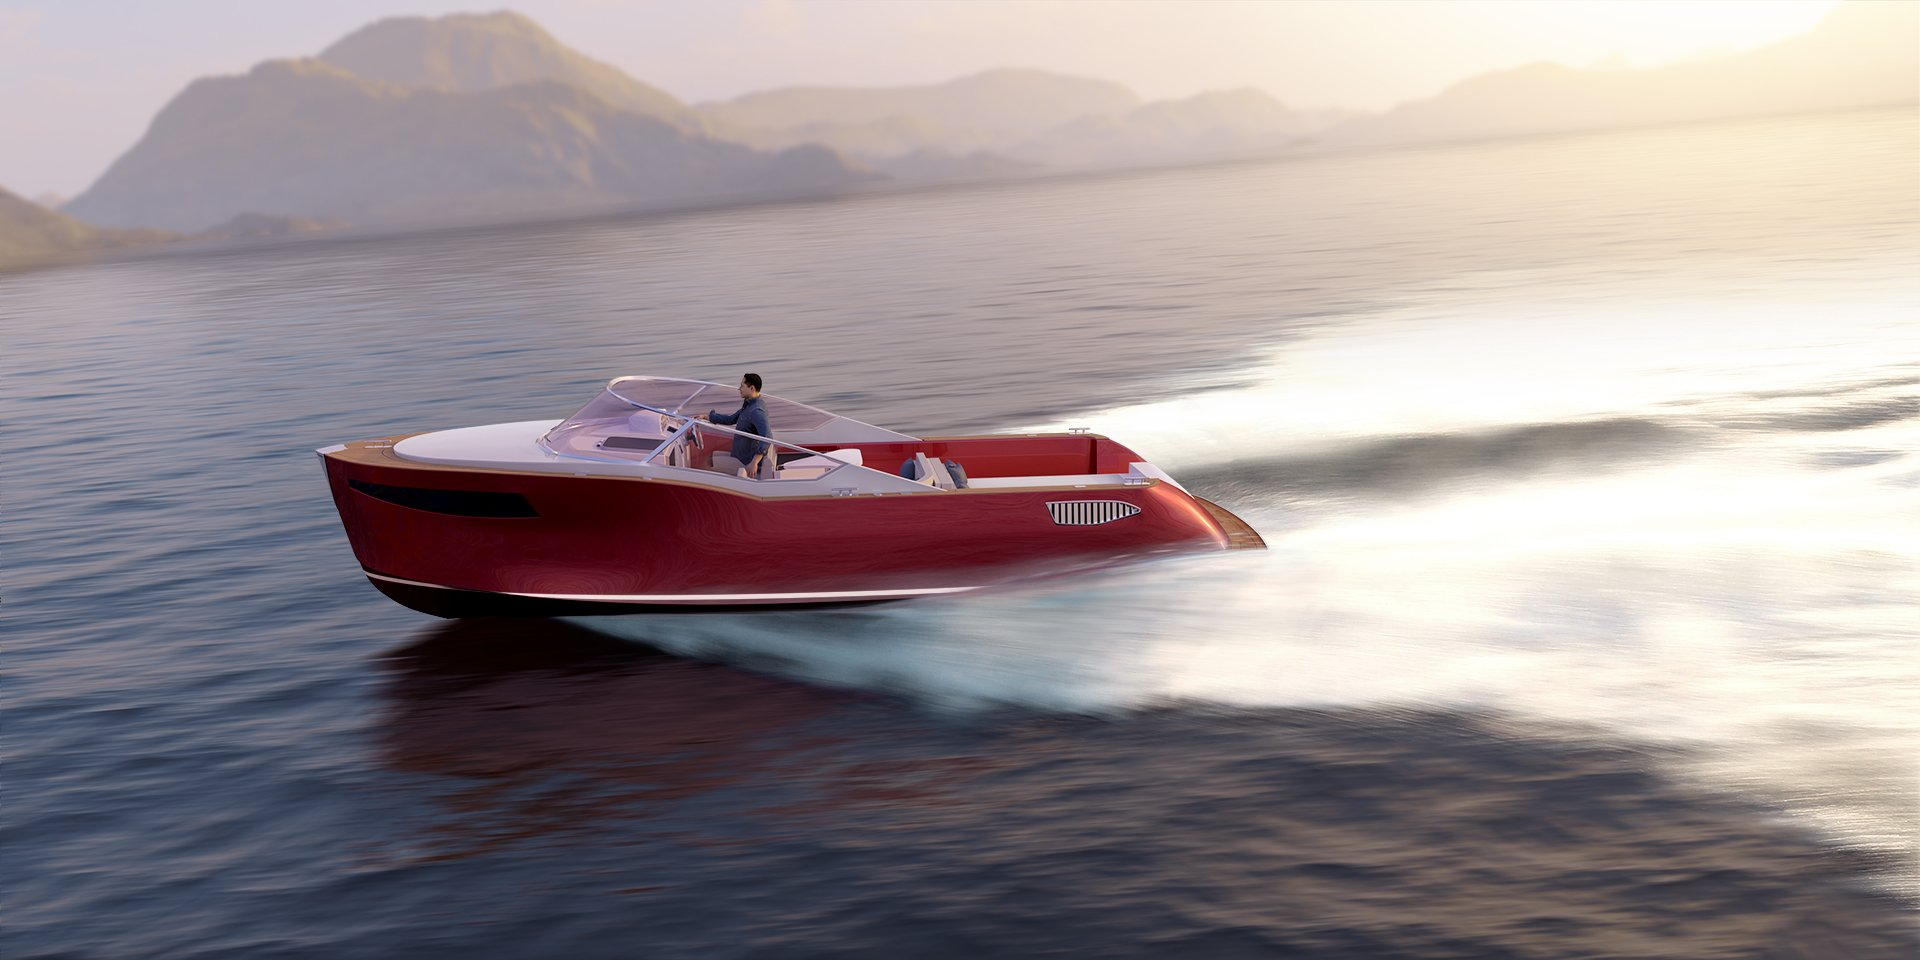 3d-configurator-online-Cayos-Render-Sailing-side-boat